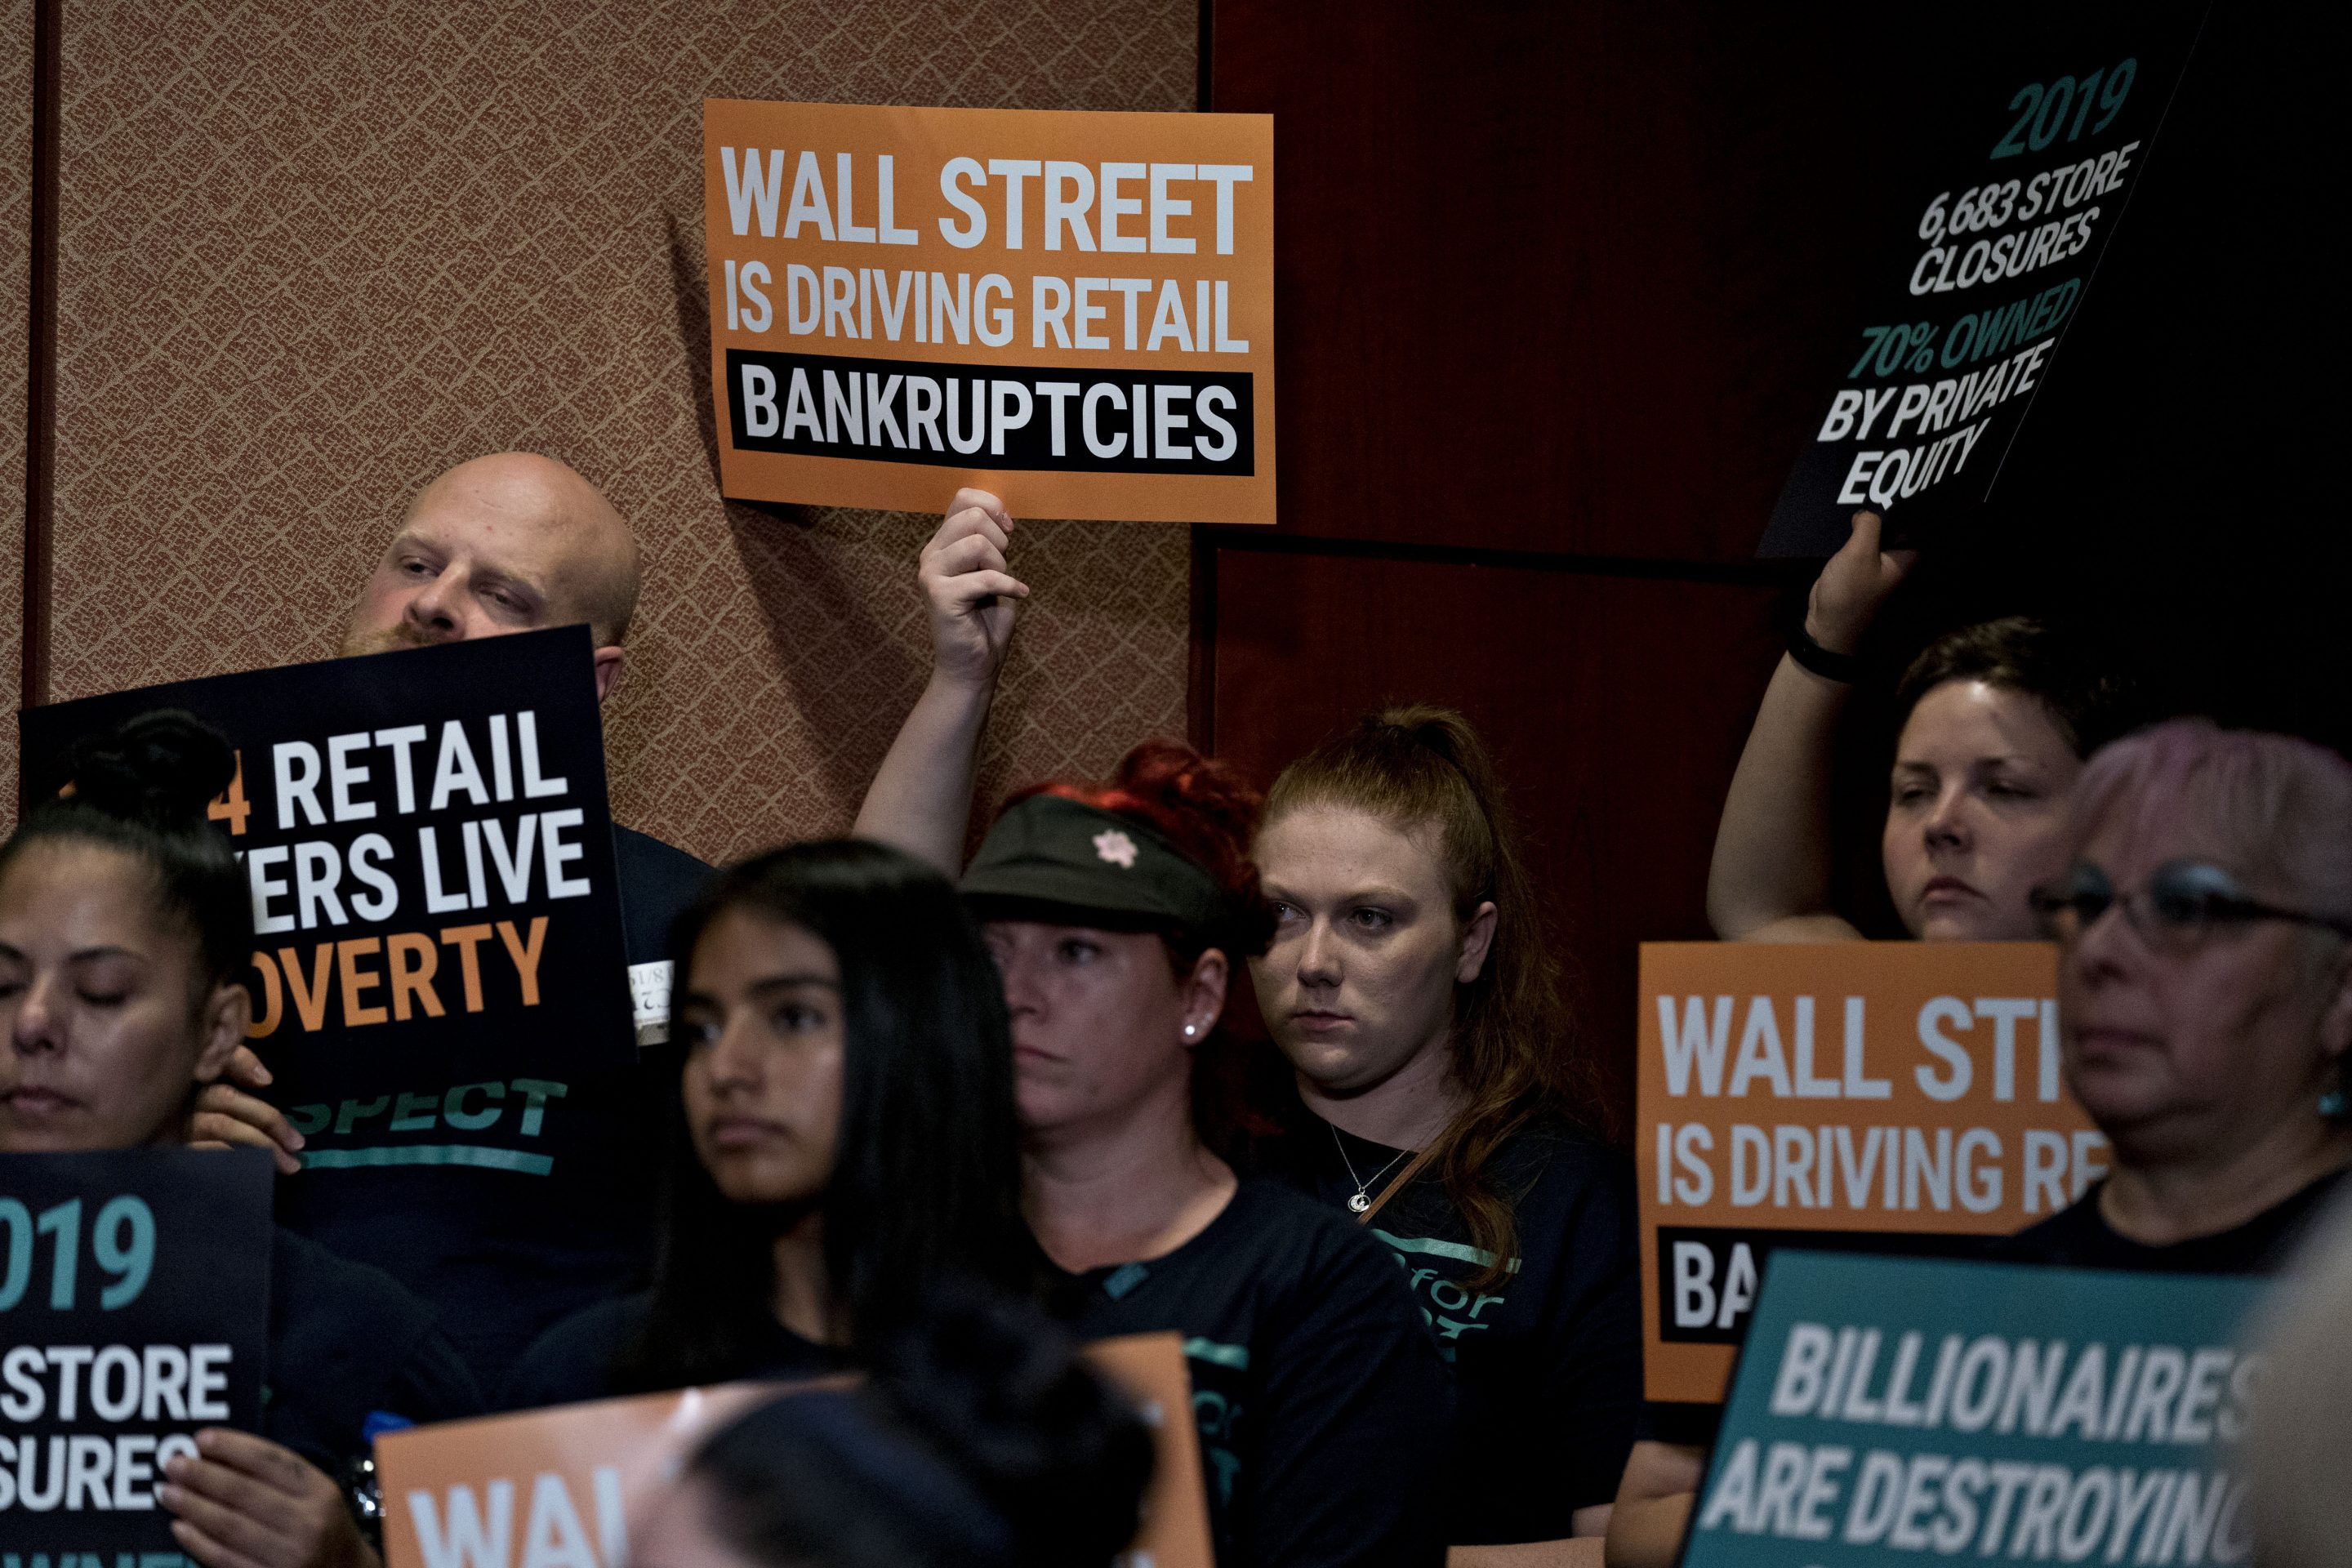 An attendee holds up a sign during a news conference on the Stop Wall Street Looting Act on Capitol Hill in Washington, D.C., on Thursday, July 18, 2019.